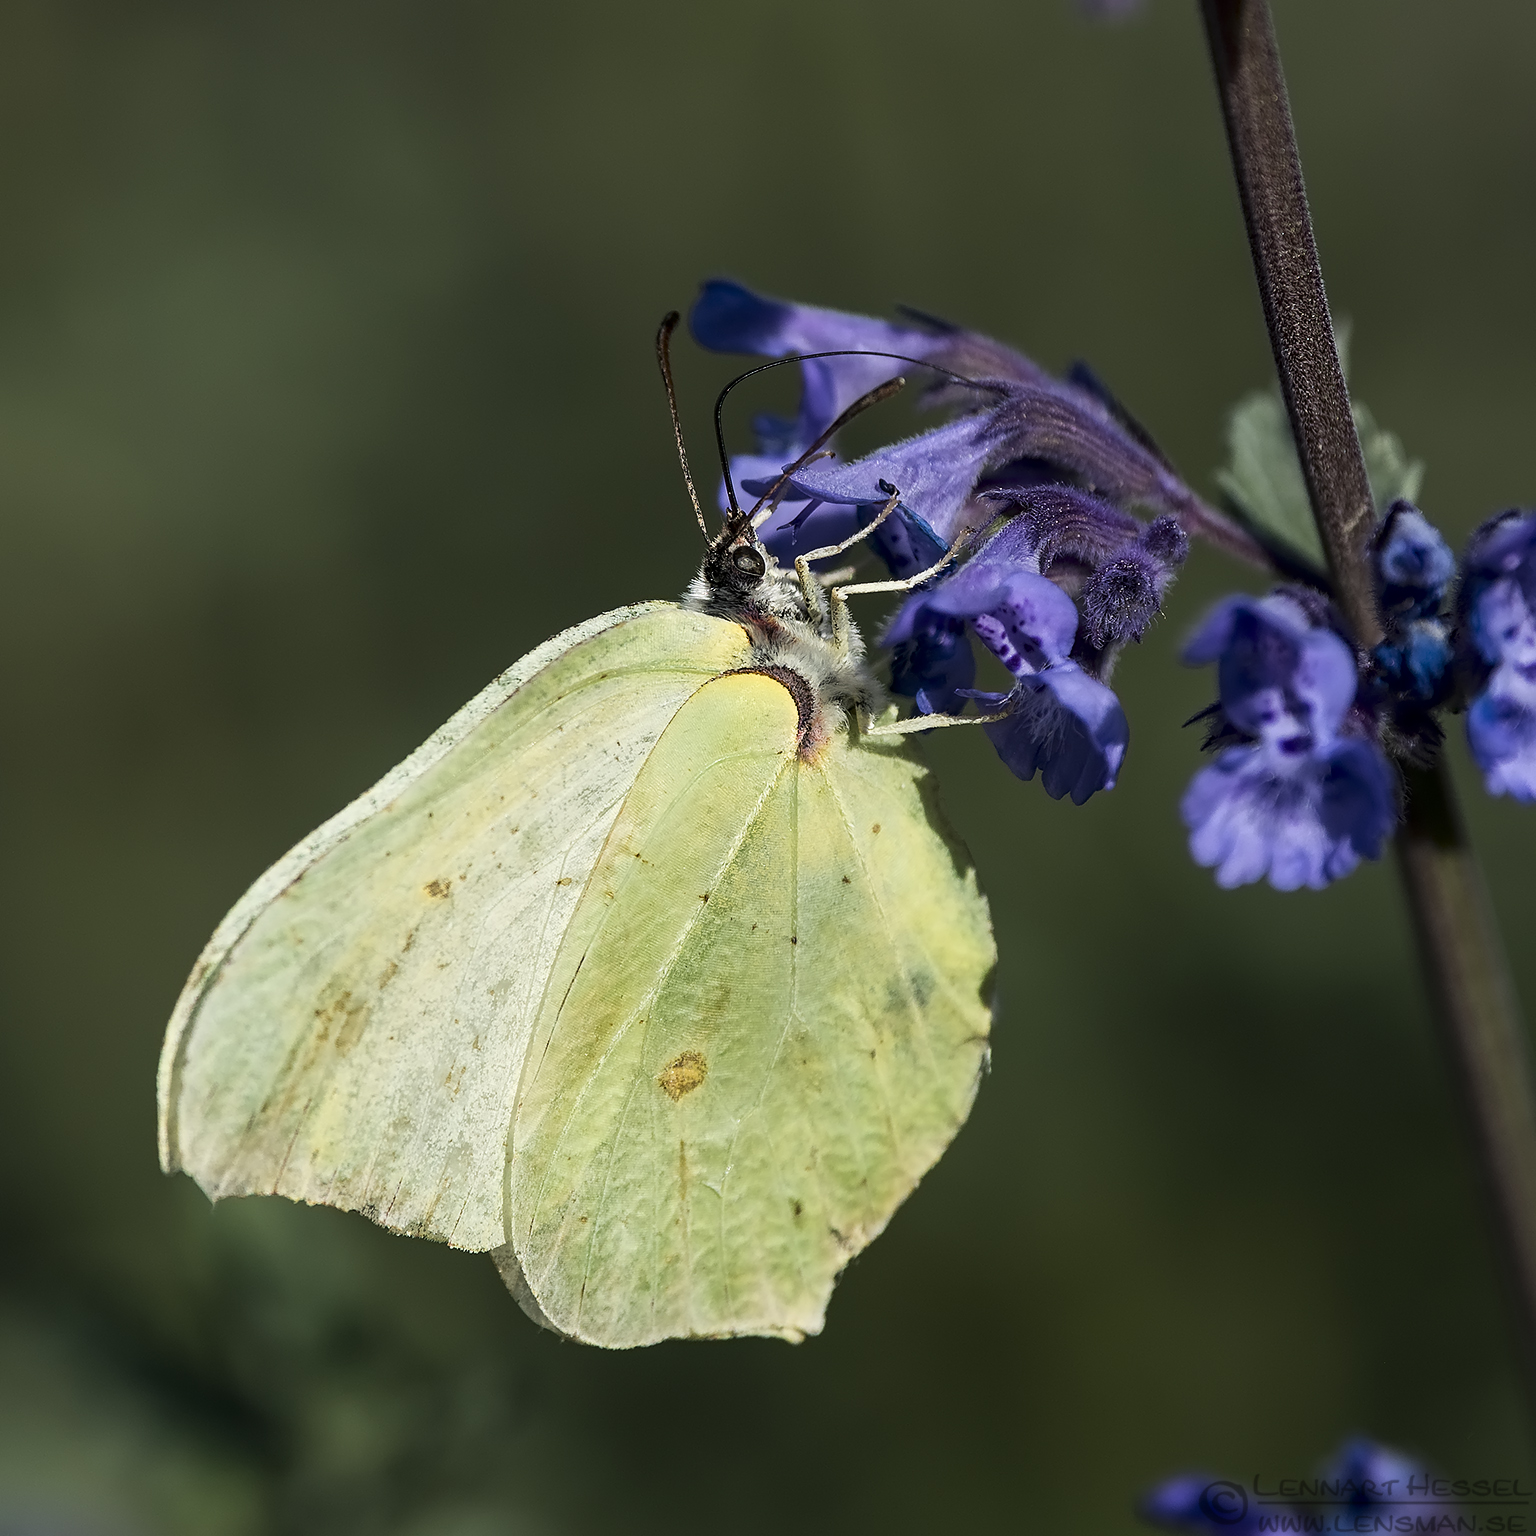 Common Brimstone insects